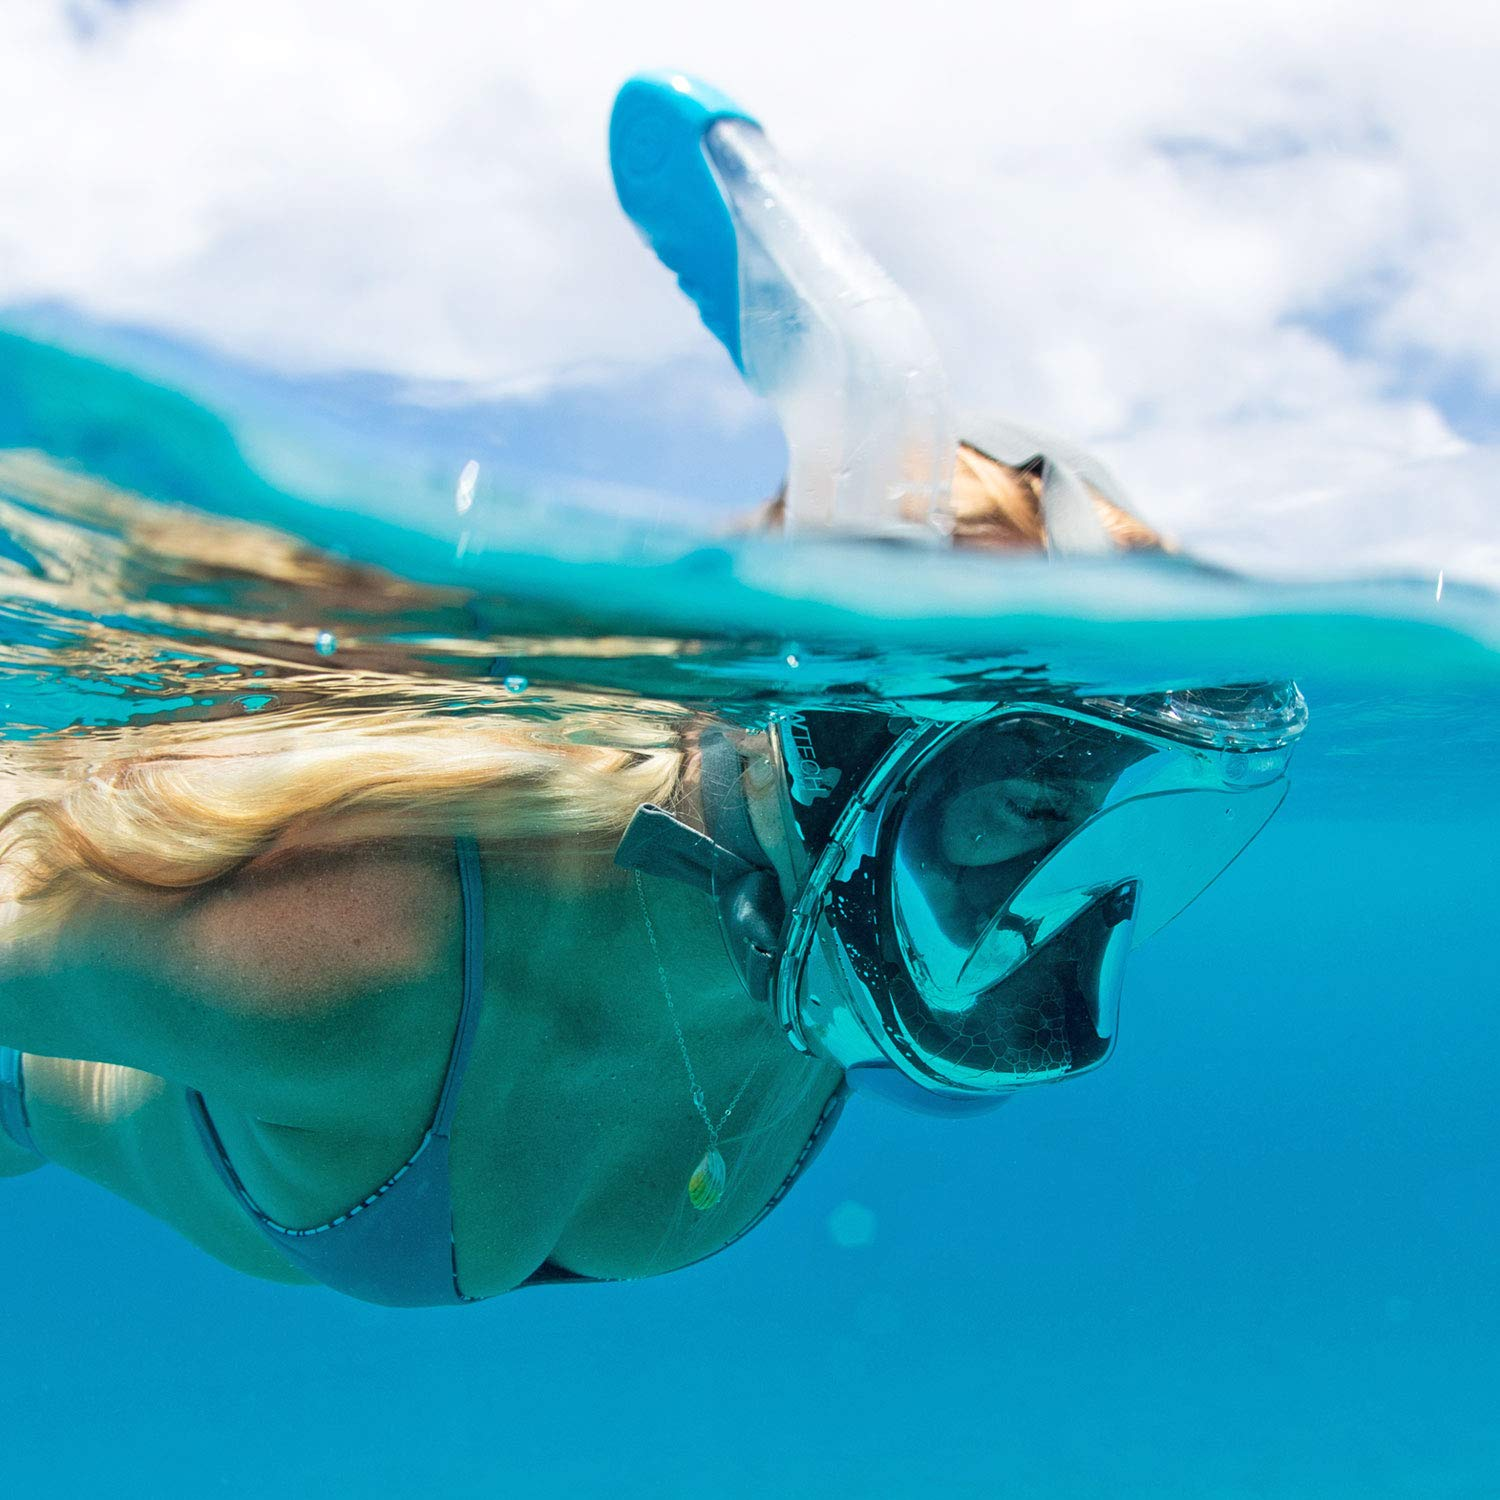 WildHorn Outfitters Seaview 180° V2 Full Face Snorkel Mask with FLOWTECH Advanced Breathing System - Allows for A Natural & Safe Snorkeling Experience- Panoramic Side Snorkel Set Design by WildHorn Outfitters (Image #2)